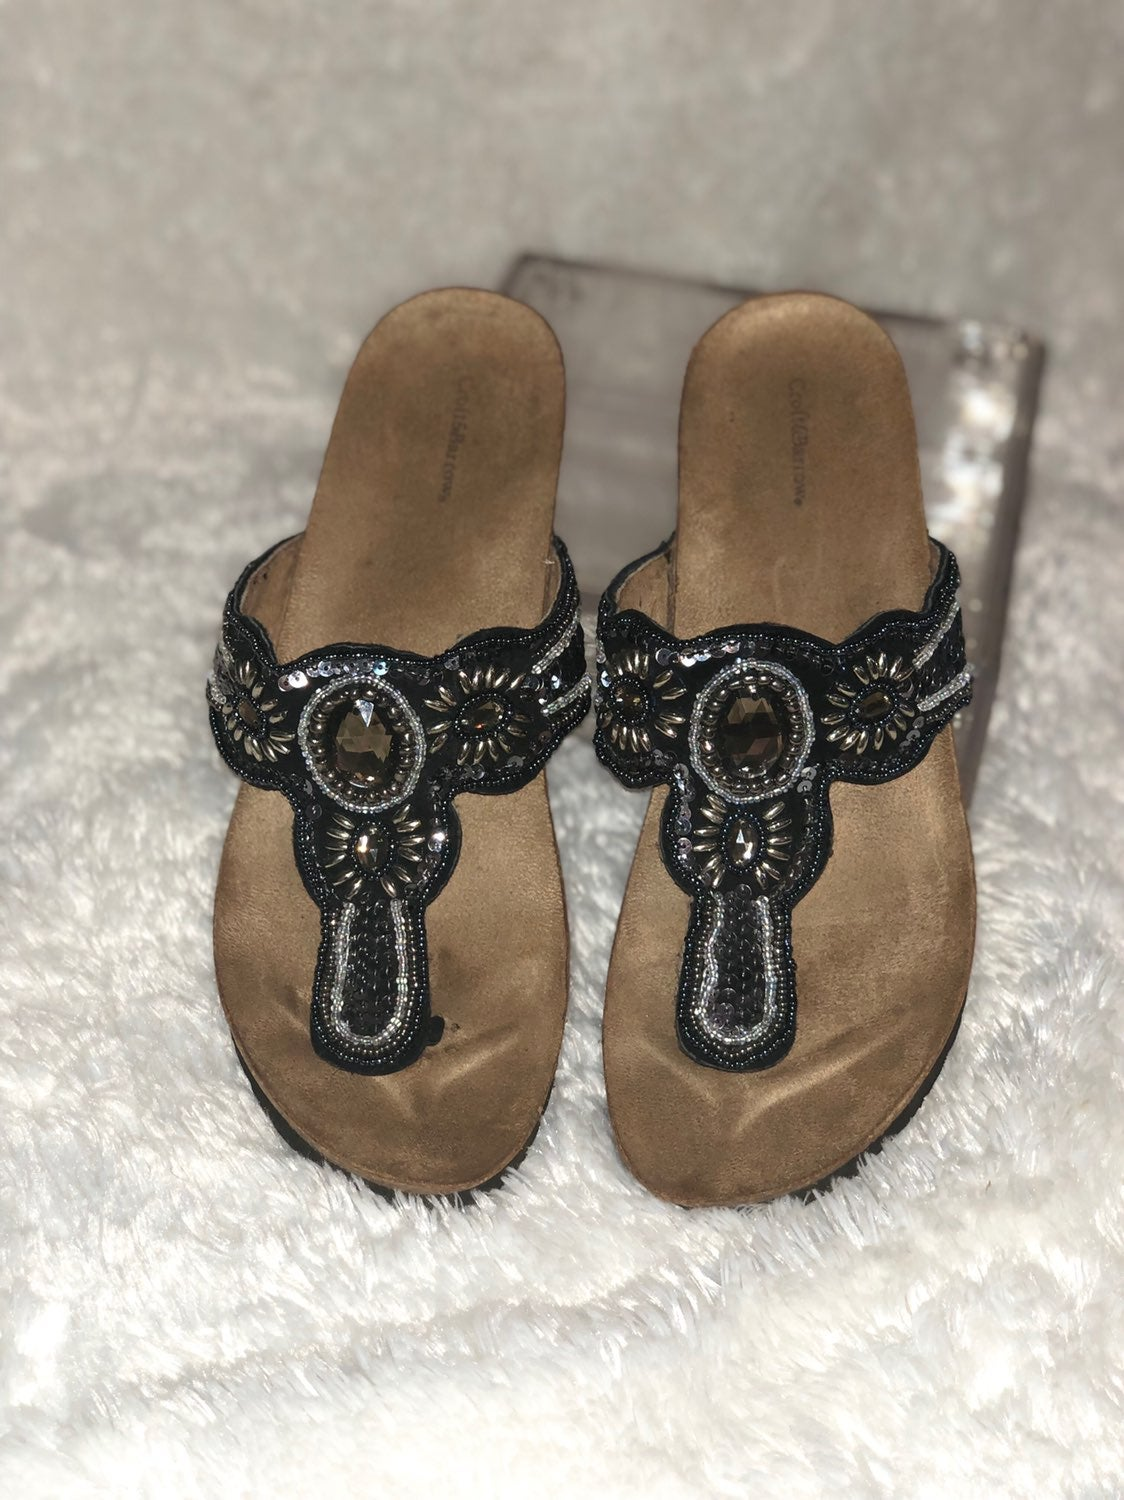 Sequined & Jeweled Sandals, Size 8